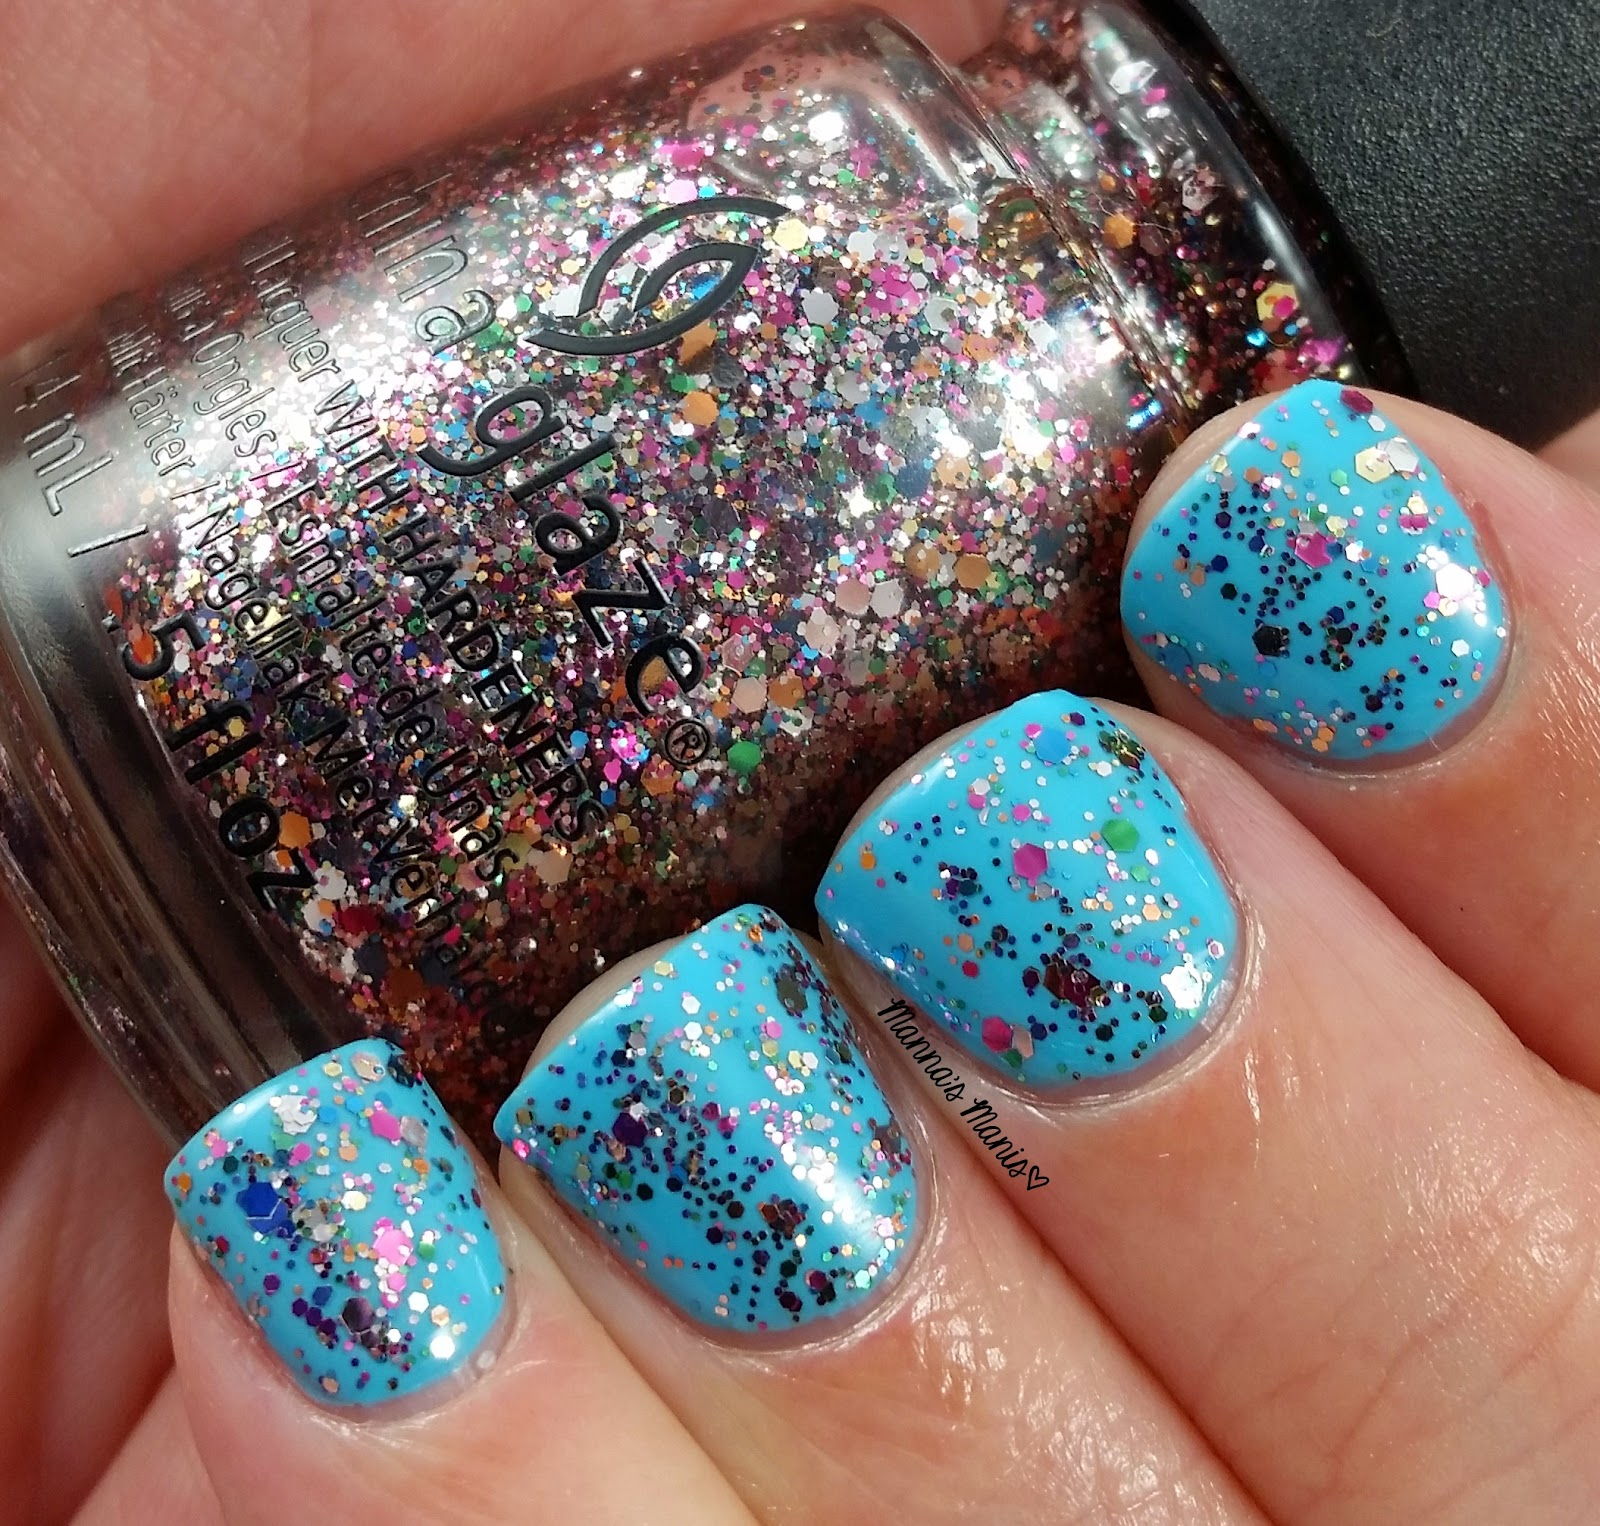 china glaze dancing and prancing, a multi colored glitter topper nail polish